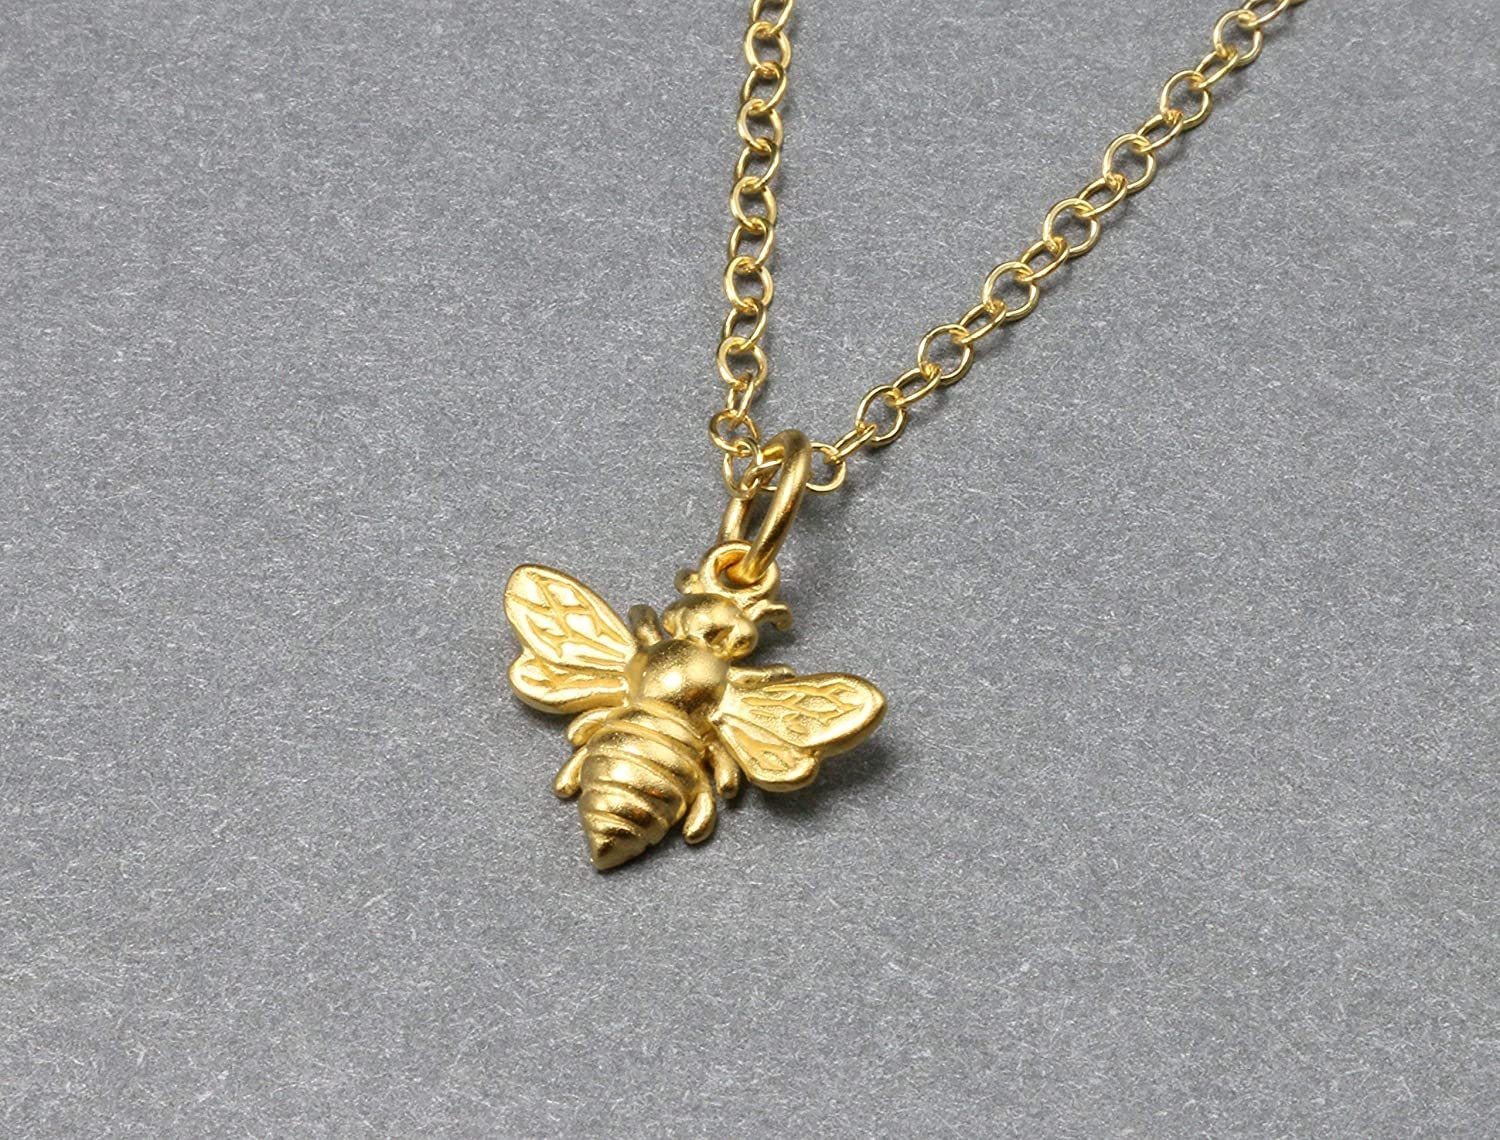 0176f6a5497ad Small Gold Bee Necklace, Honeybee and Bumble Bee Jewelry, Minimal Save the  Bee Necklace, Detailed Gold Vermeil Bee Charm on 14k Gold Filled Chain